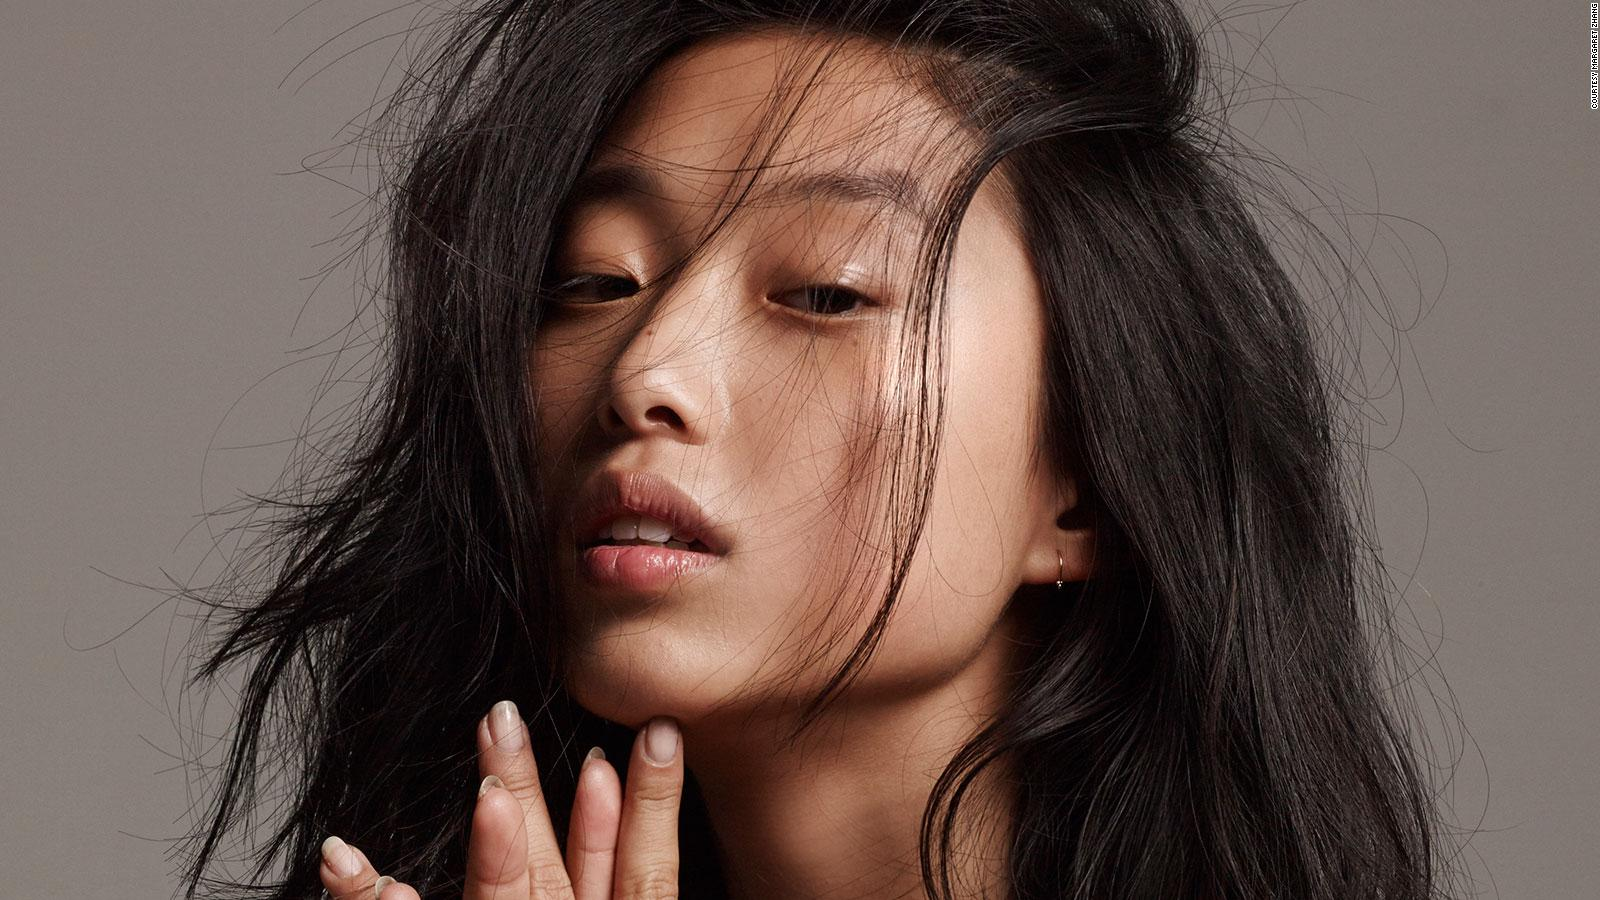 171212155009-card-image-margaret-zhang-profile-shot-full-169 Australian Bloggers - Top 10 Fashion Blogs From Australia